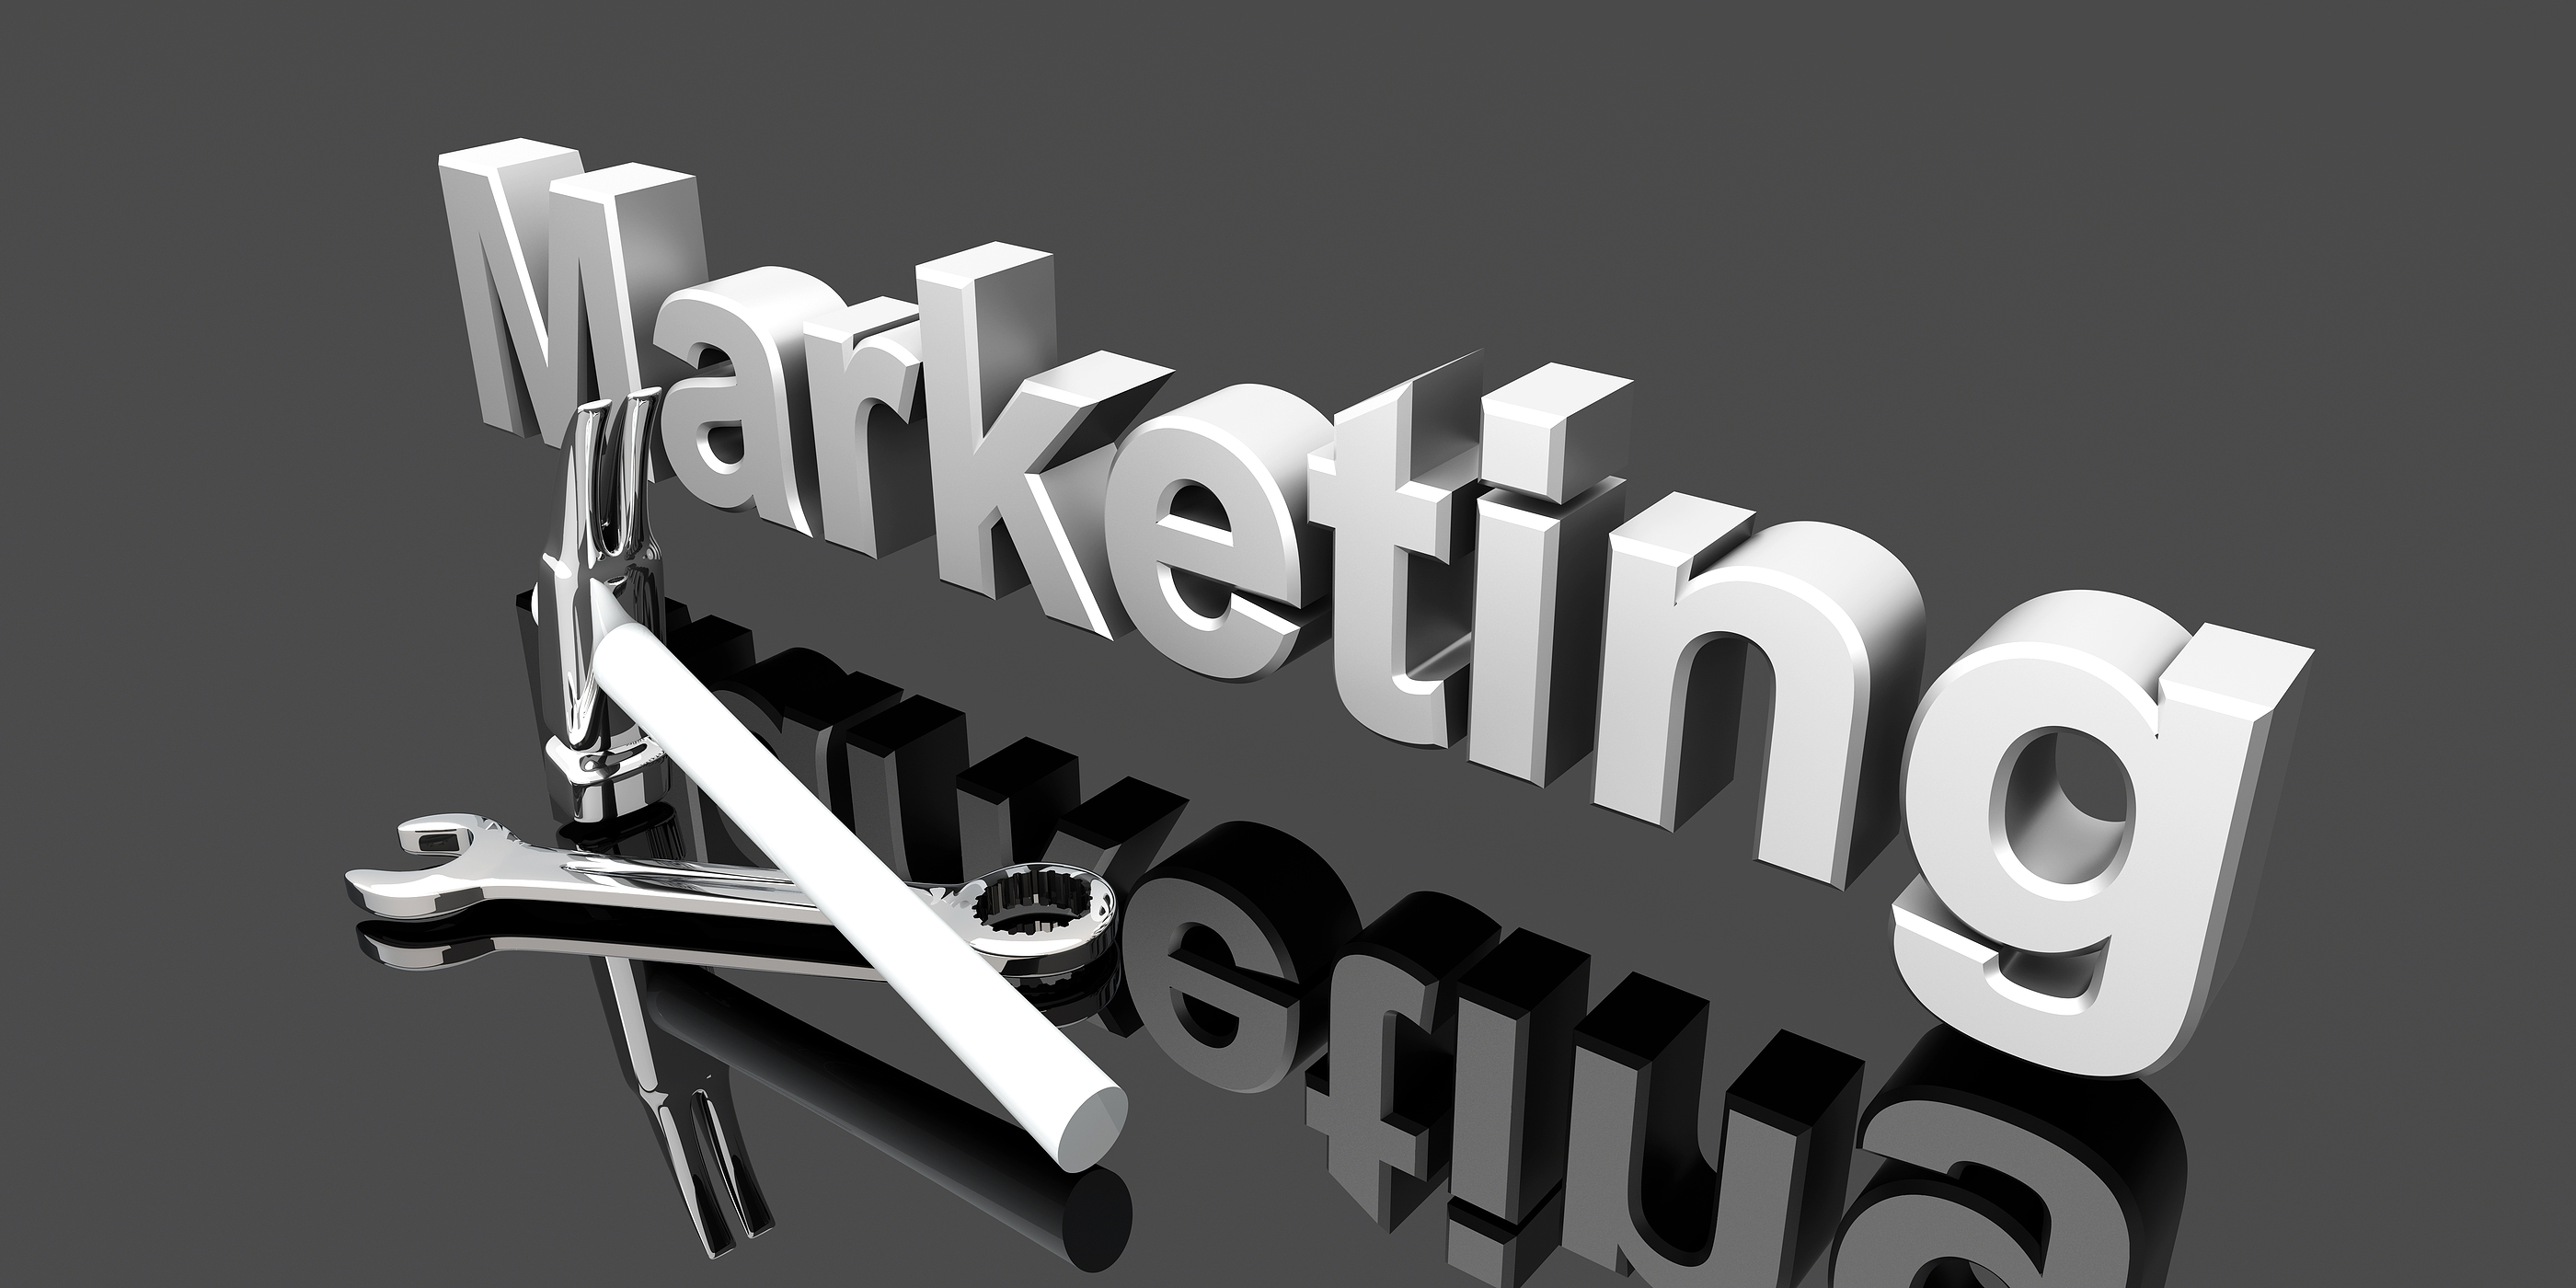 digital marketing tools and sales strategies for manufacturers